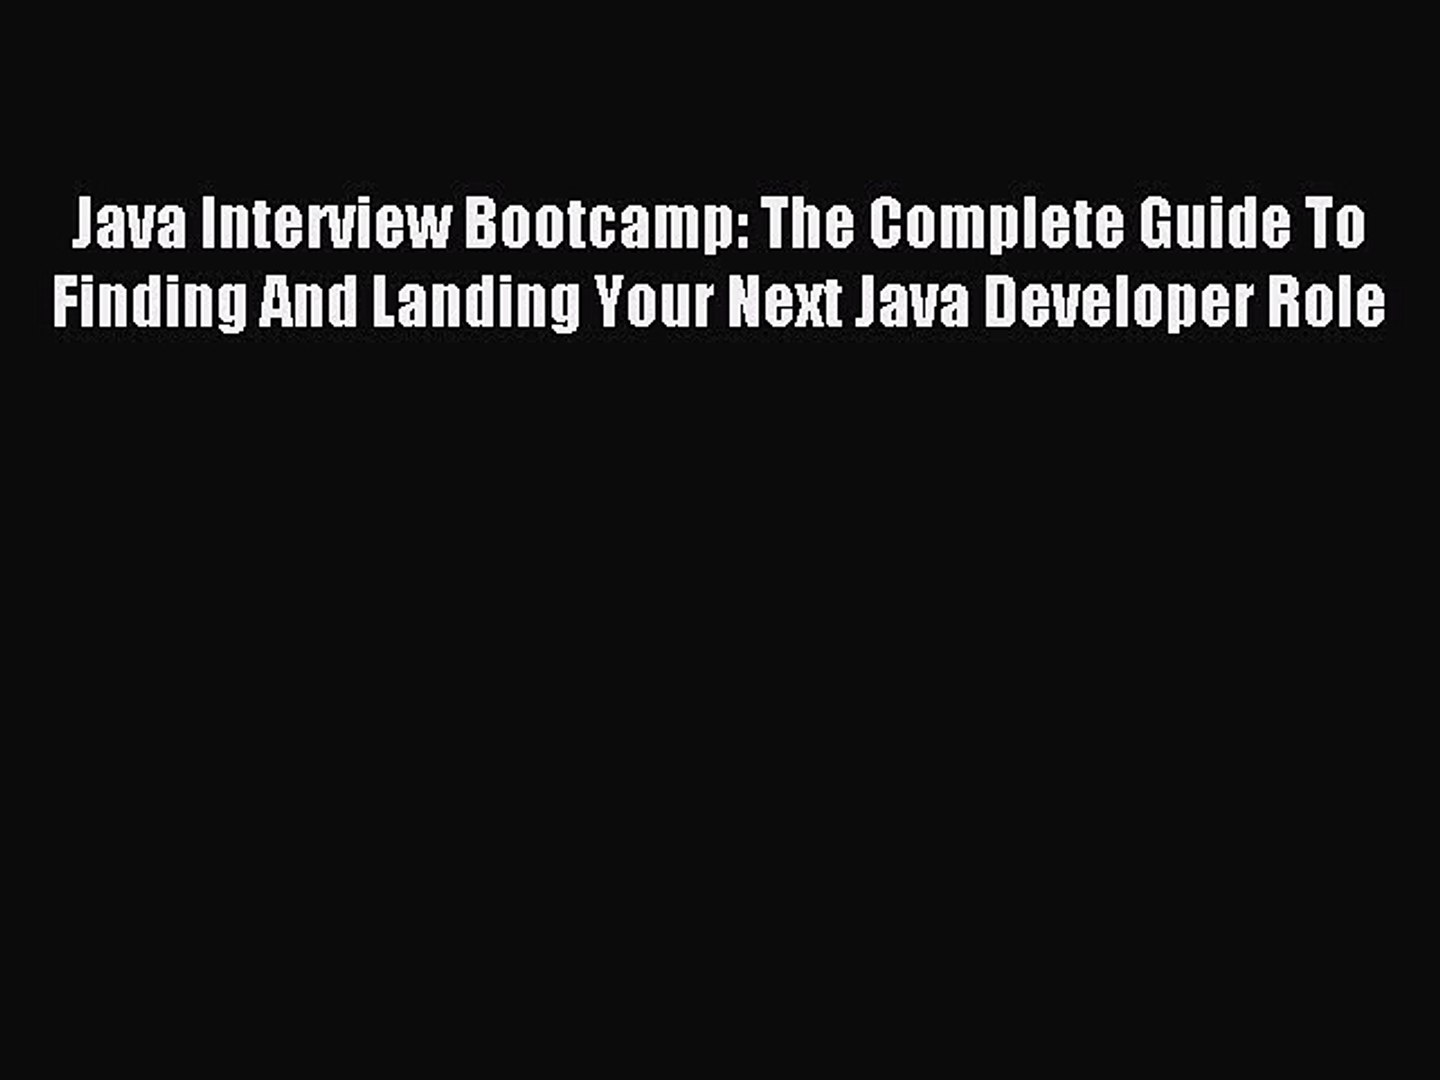 PDF Java Interview Bootcamp: The Complete Guide To Finding And Landing Your Next Java Developer